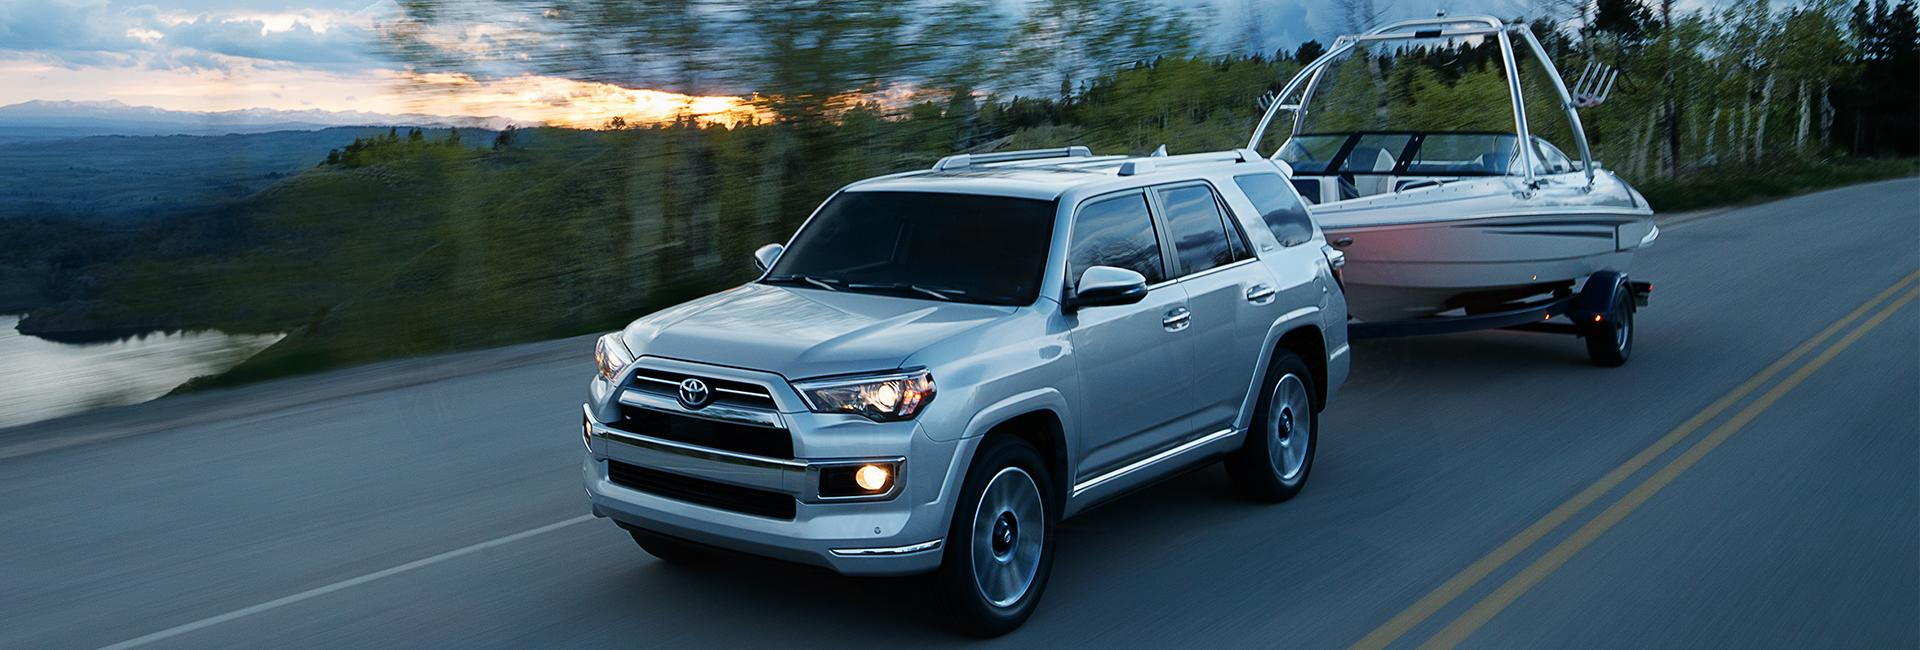 Picture of the 2020 Toyota 4Runner for sale at Spitzer Toyota